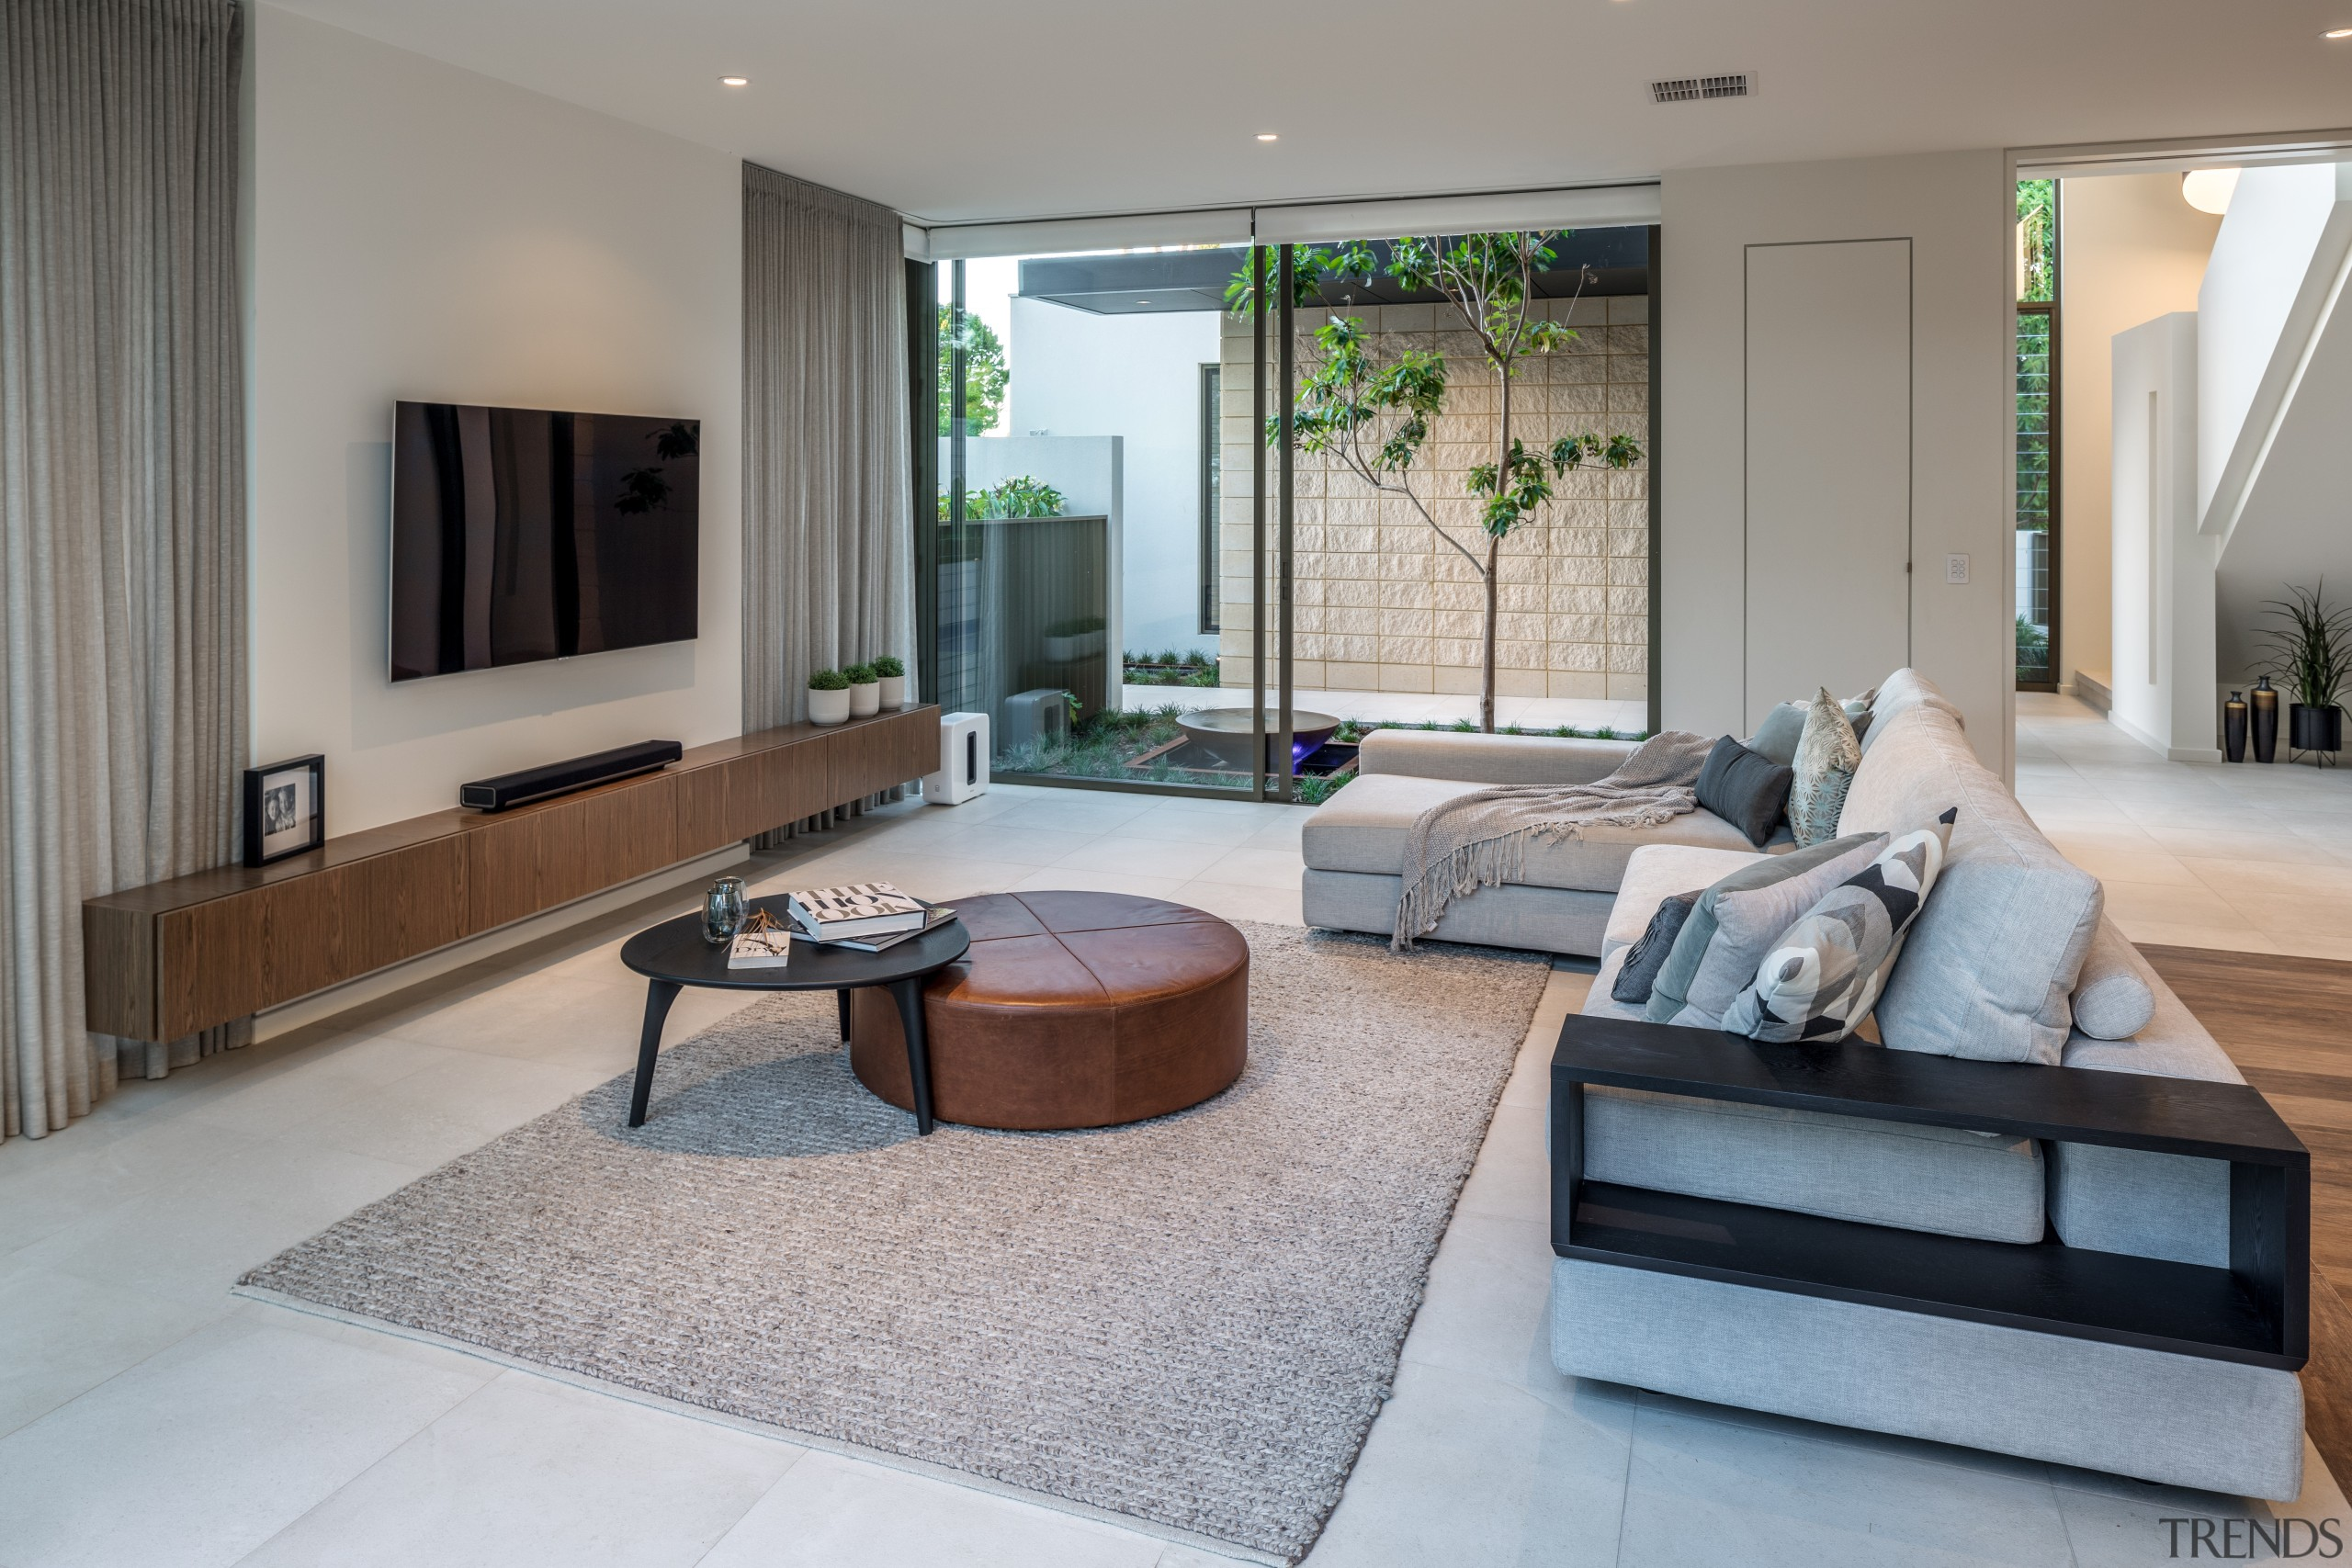 In a home that's all about connections, this apartment, architecture, building, ceiling, coffee table, estate, floor, flooring, furniture, home, house, interior design, living room, lobby, property, real estate, room, table, tile, gray